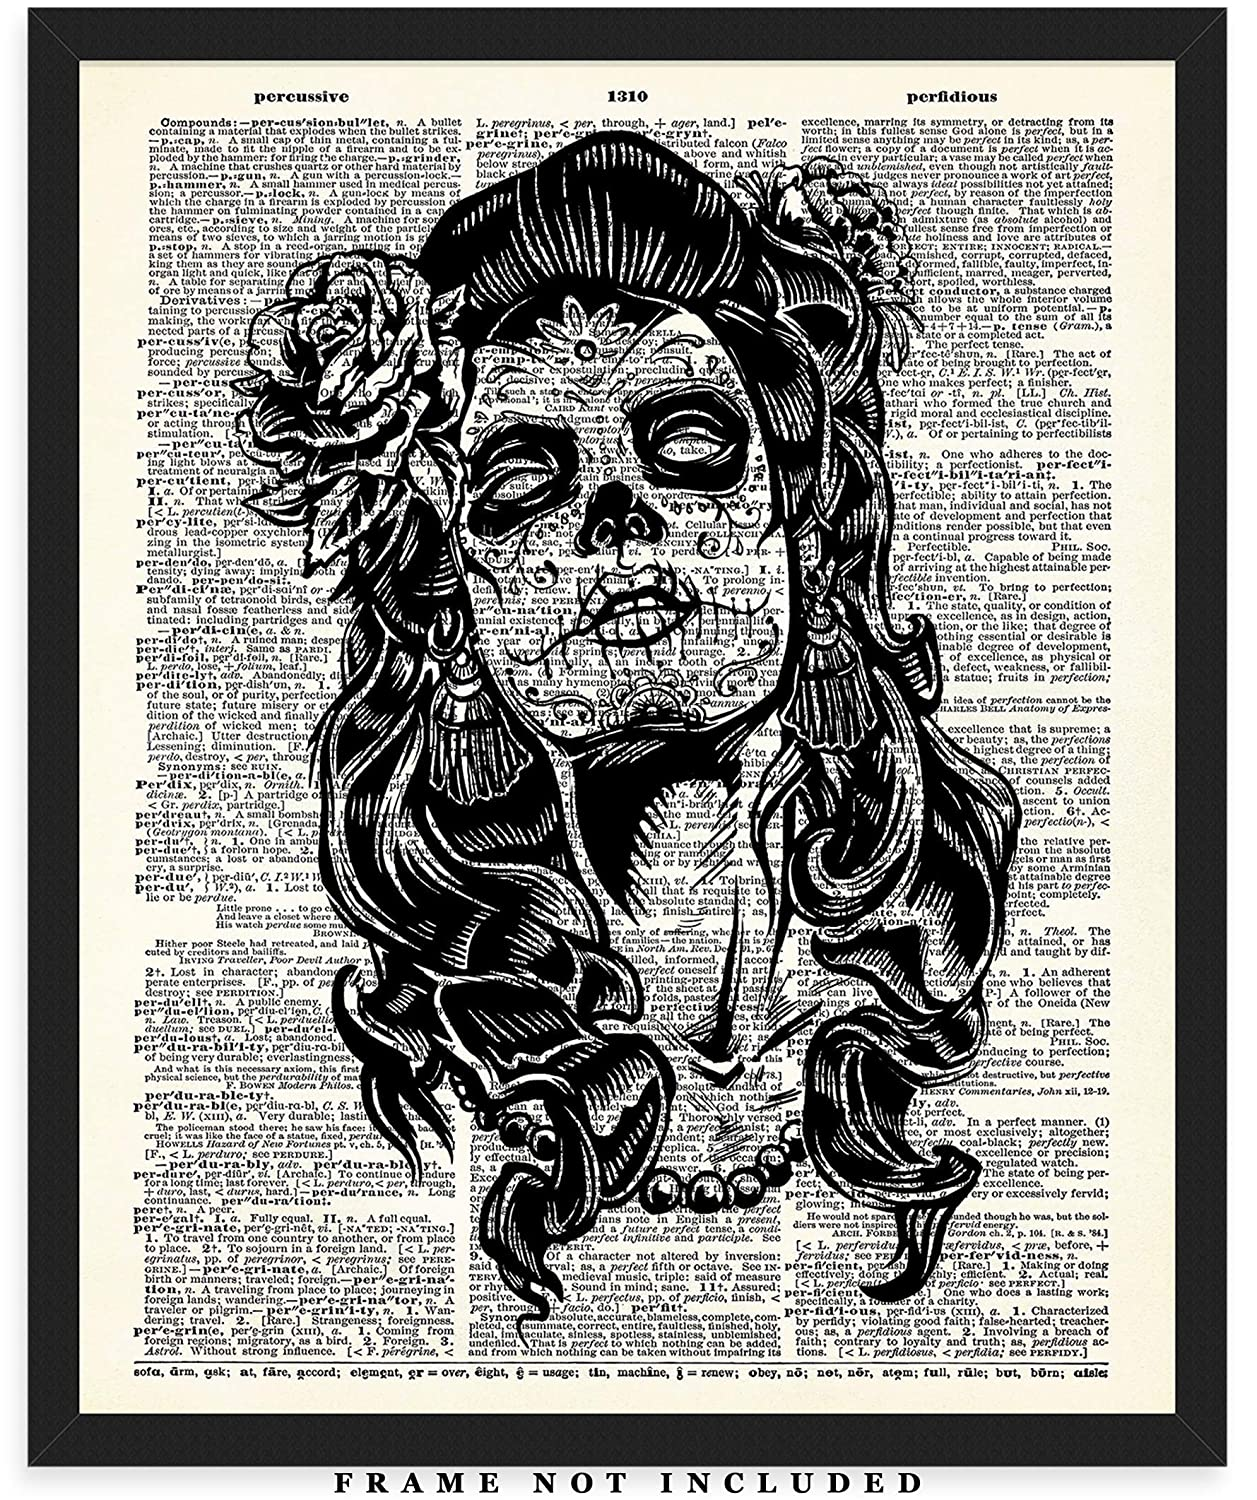 Great Gift Idea Under $15 Girls /& Women - Day of the Dead Sugar Skull Girl Dictionary Wall Art Print: Unique Room Decor for Boys Unframed Picture Men 8x10